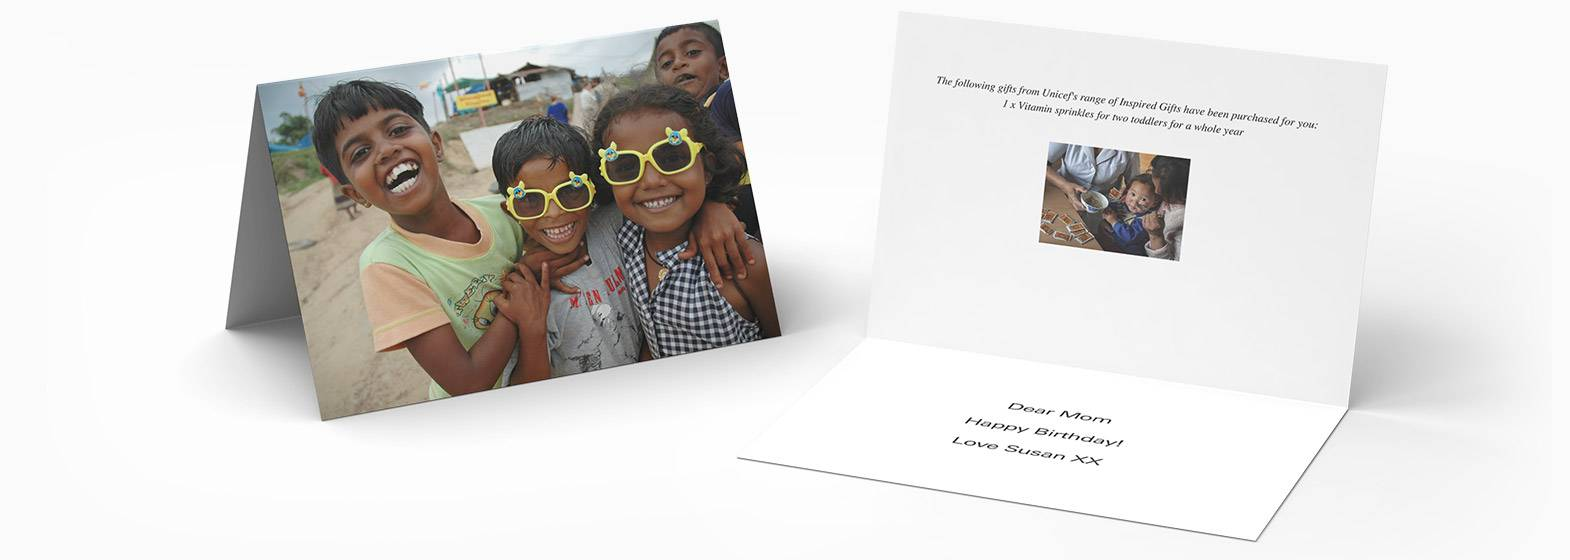 UNICEF Inspired Charity Gifts & Dedication Gifts